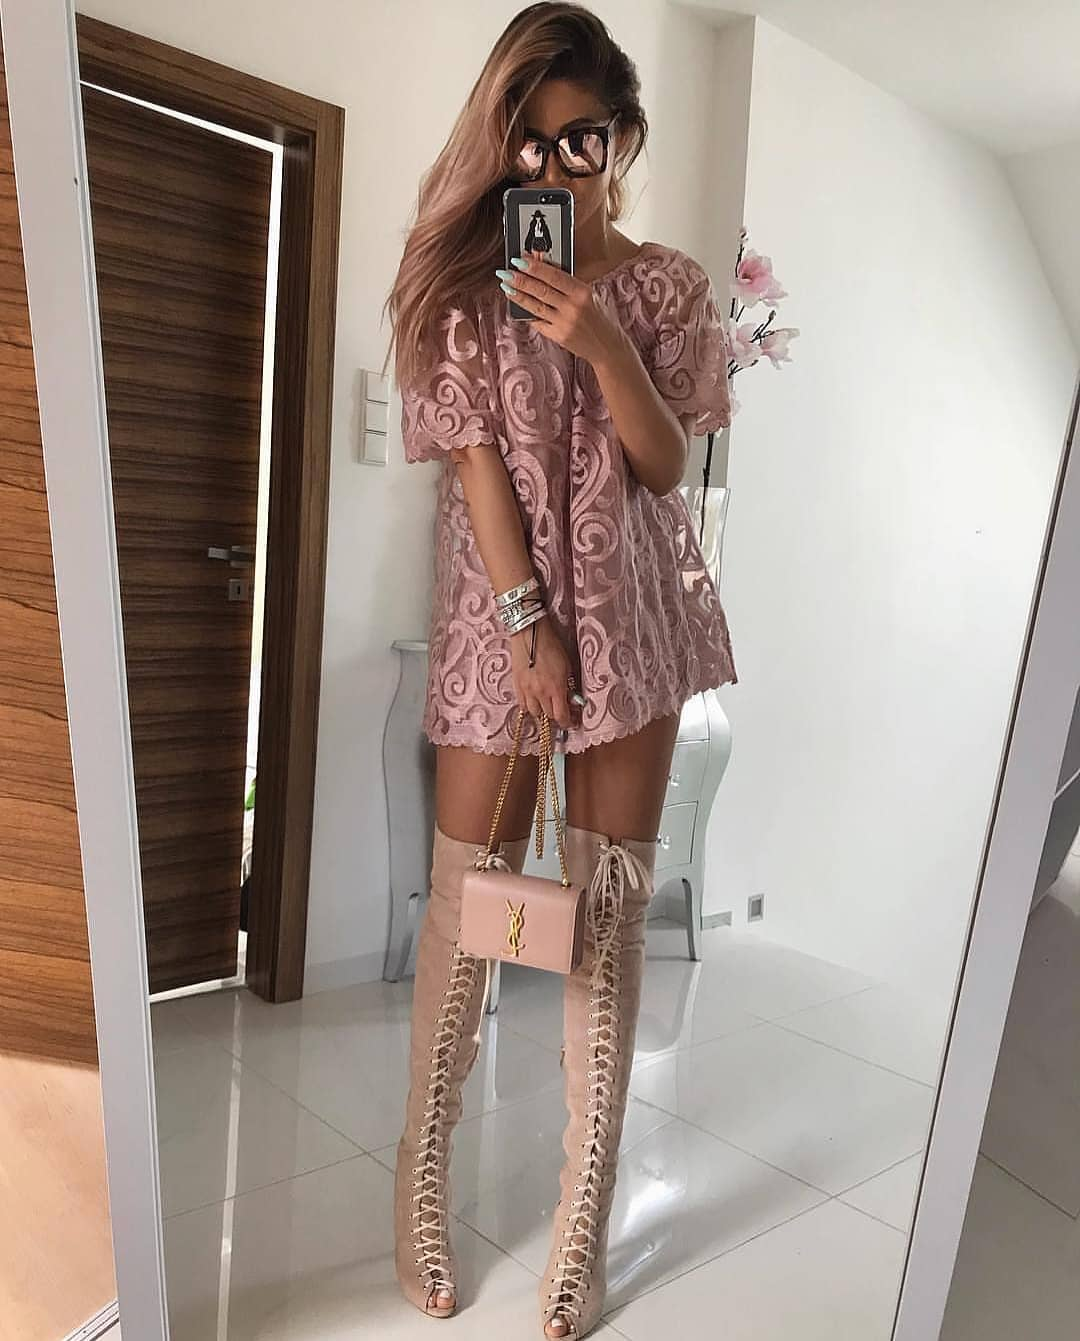 Blush Jacquard Mini T-Dress And Lace-Up OTK Boots For Summer 2019